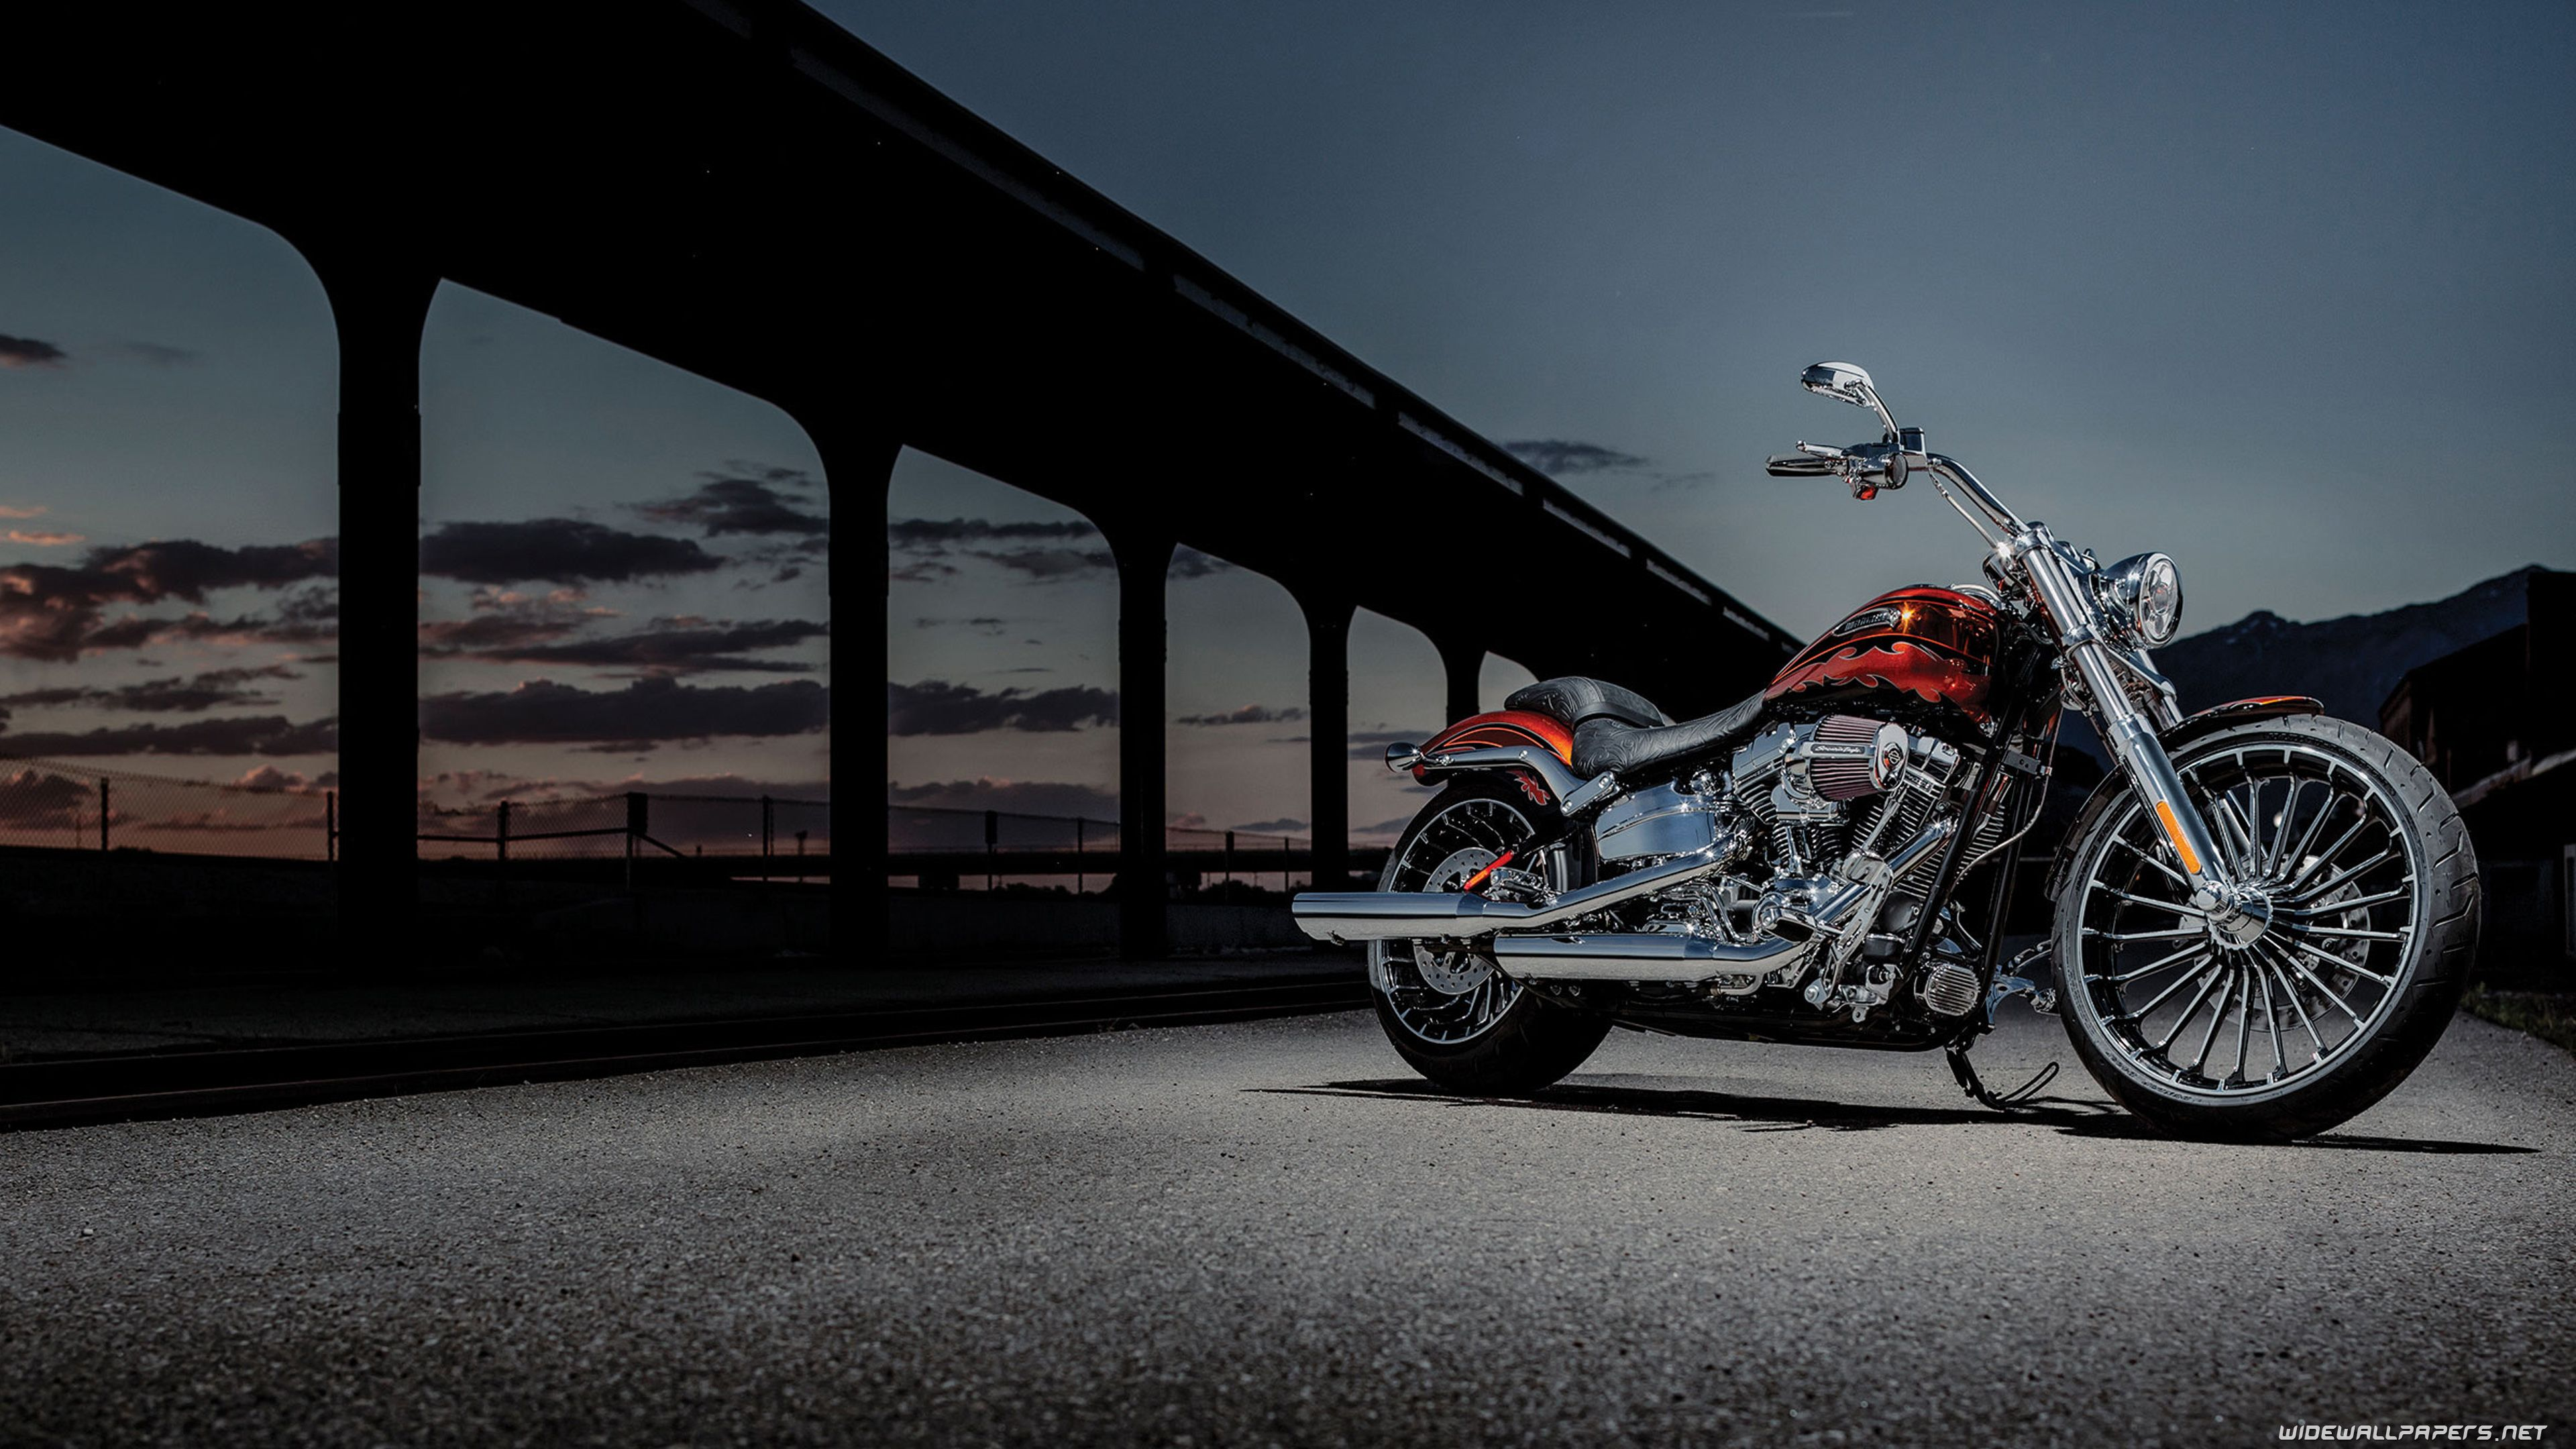 Harley Davidson Wallpaper Desktop Best Wallpaper Hd Harley Davidson Wallpaper Harley Davidson Images Harley Davidson Cvo